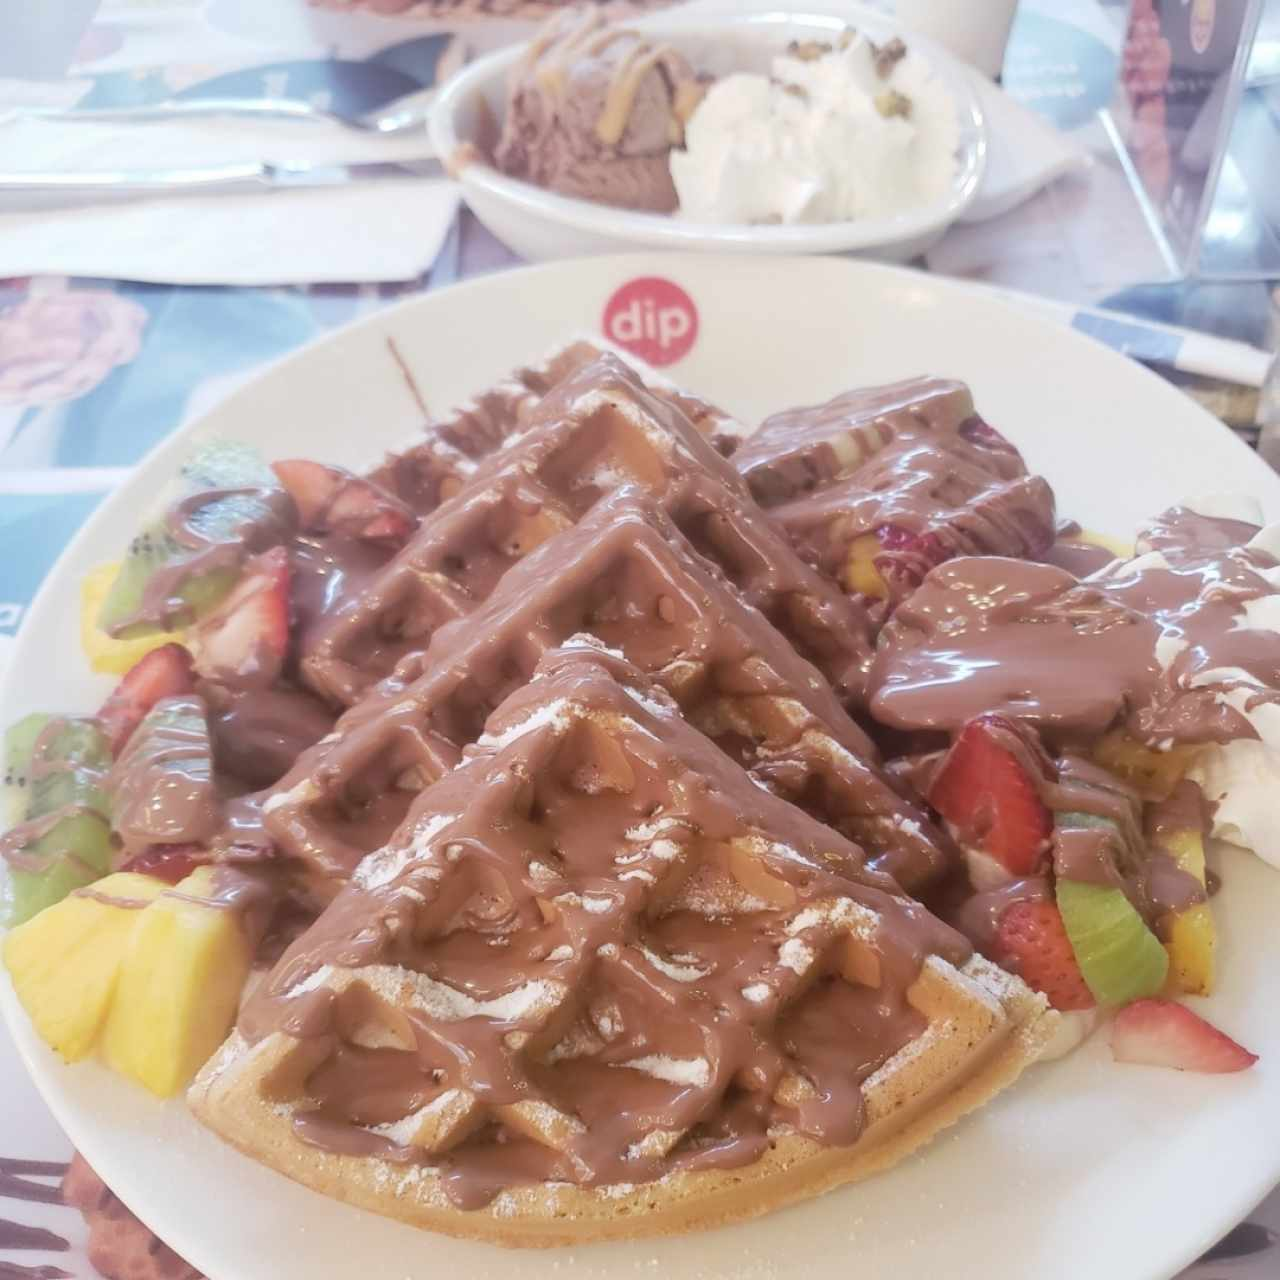 #6 wafles con chocolate y frutas